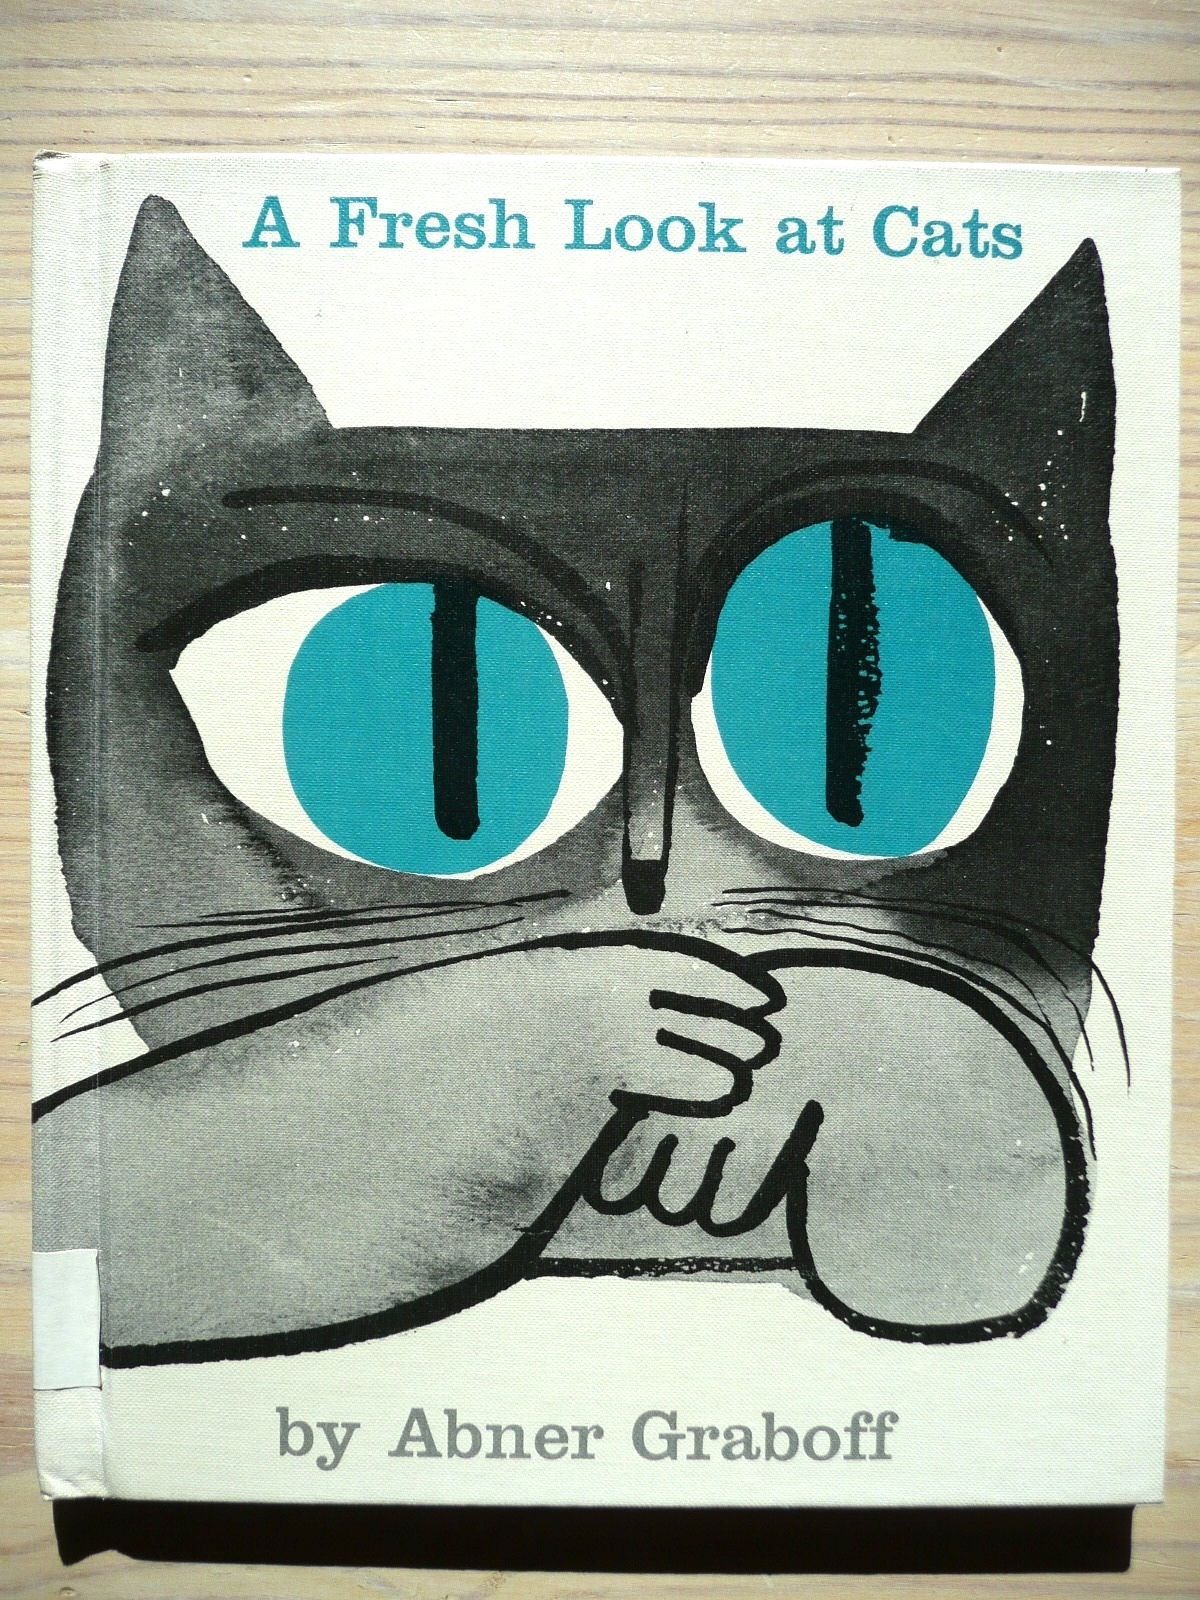 A fresh Look at Cats by Abner Graboff via Stickers and Stuff